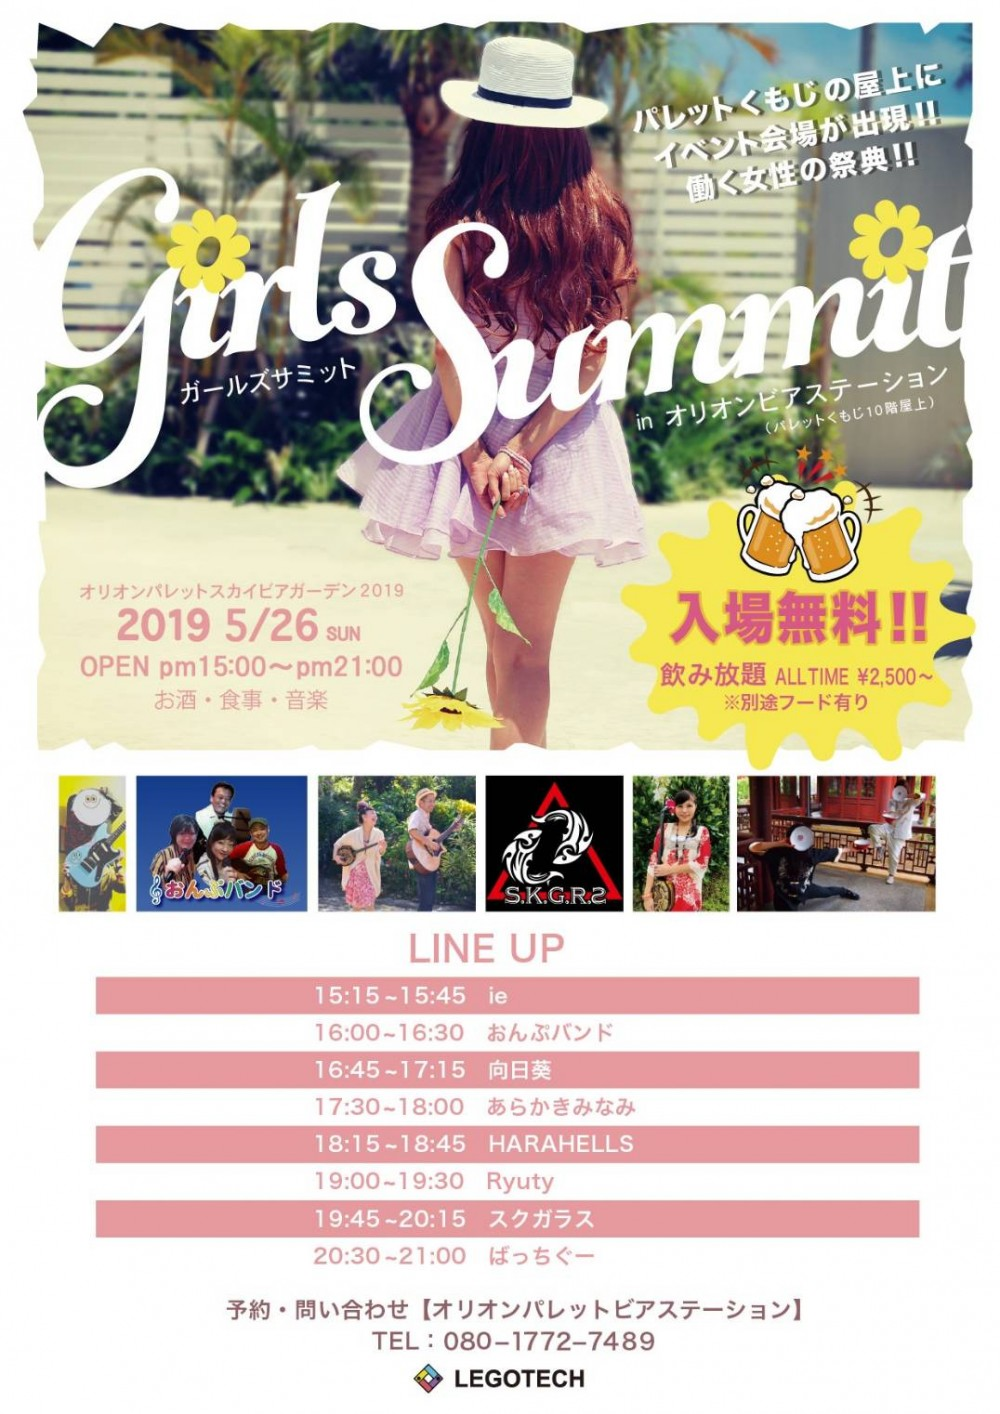 Girls Summit 2019